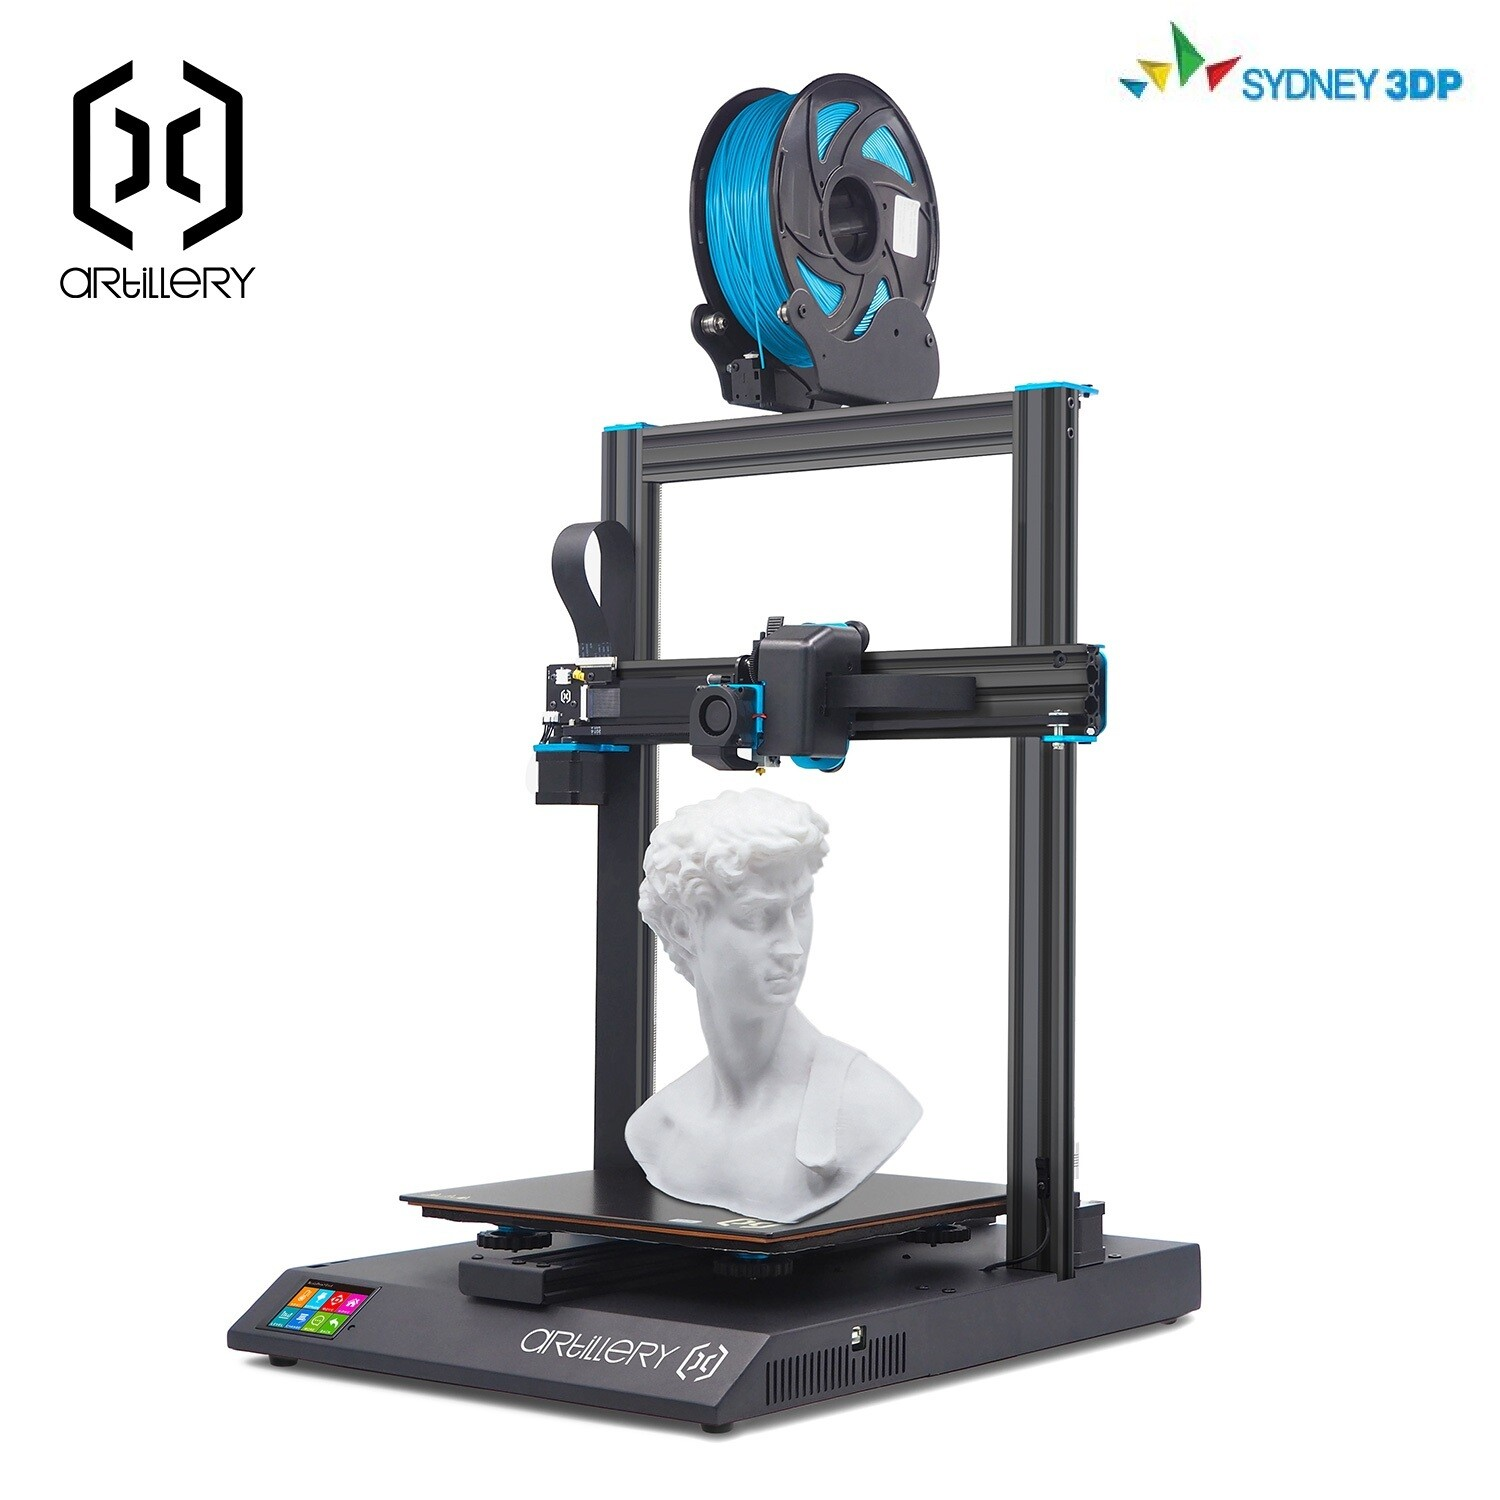 """Artillery 3D - Sidewinder X1 """"Extremely popular, well reviewed online. Excellent bang for your buck"""""""